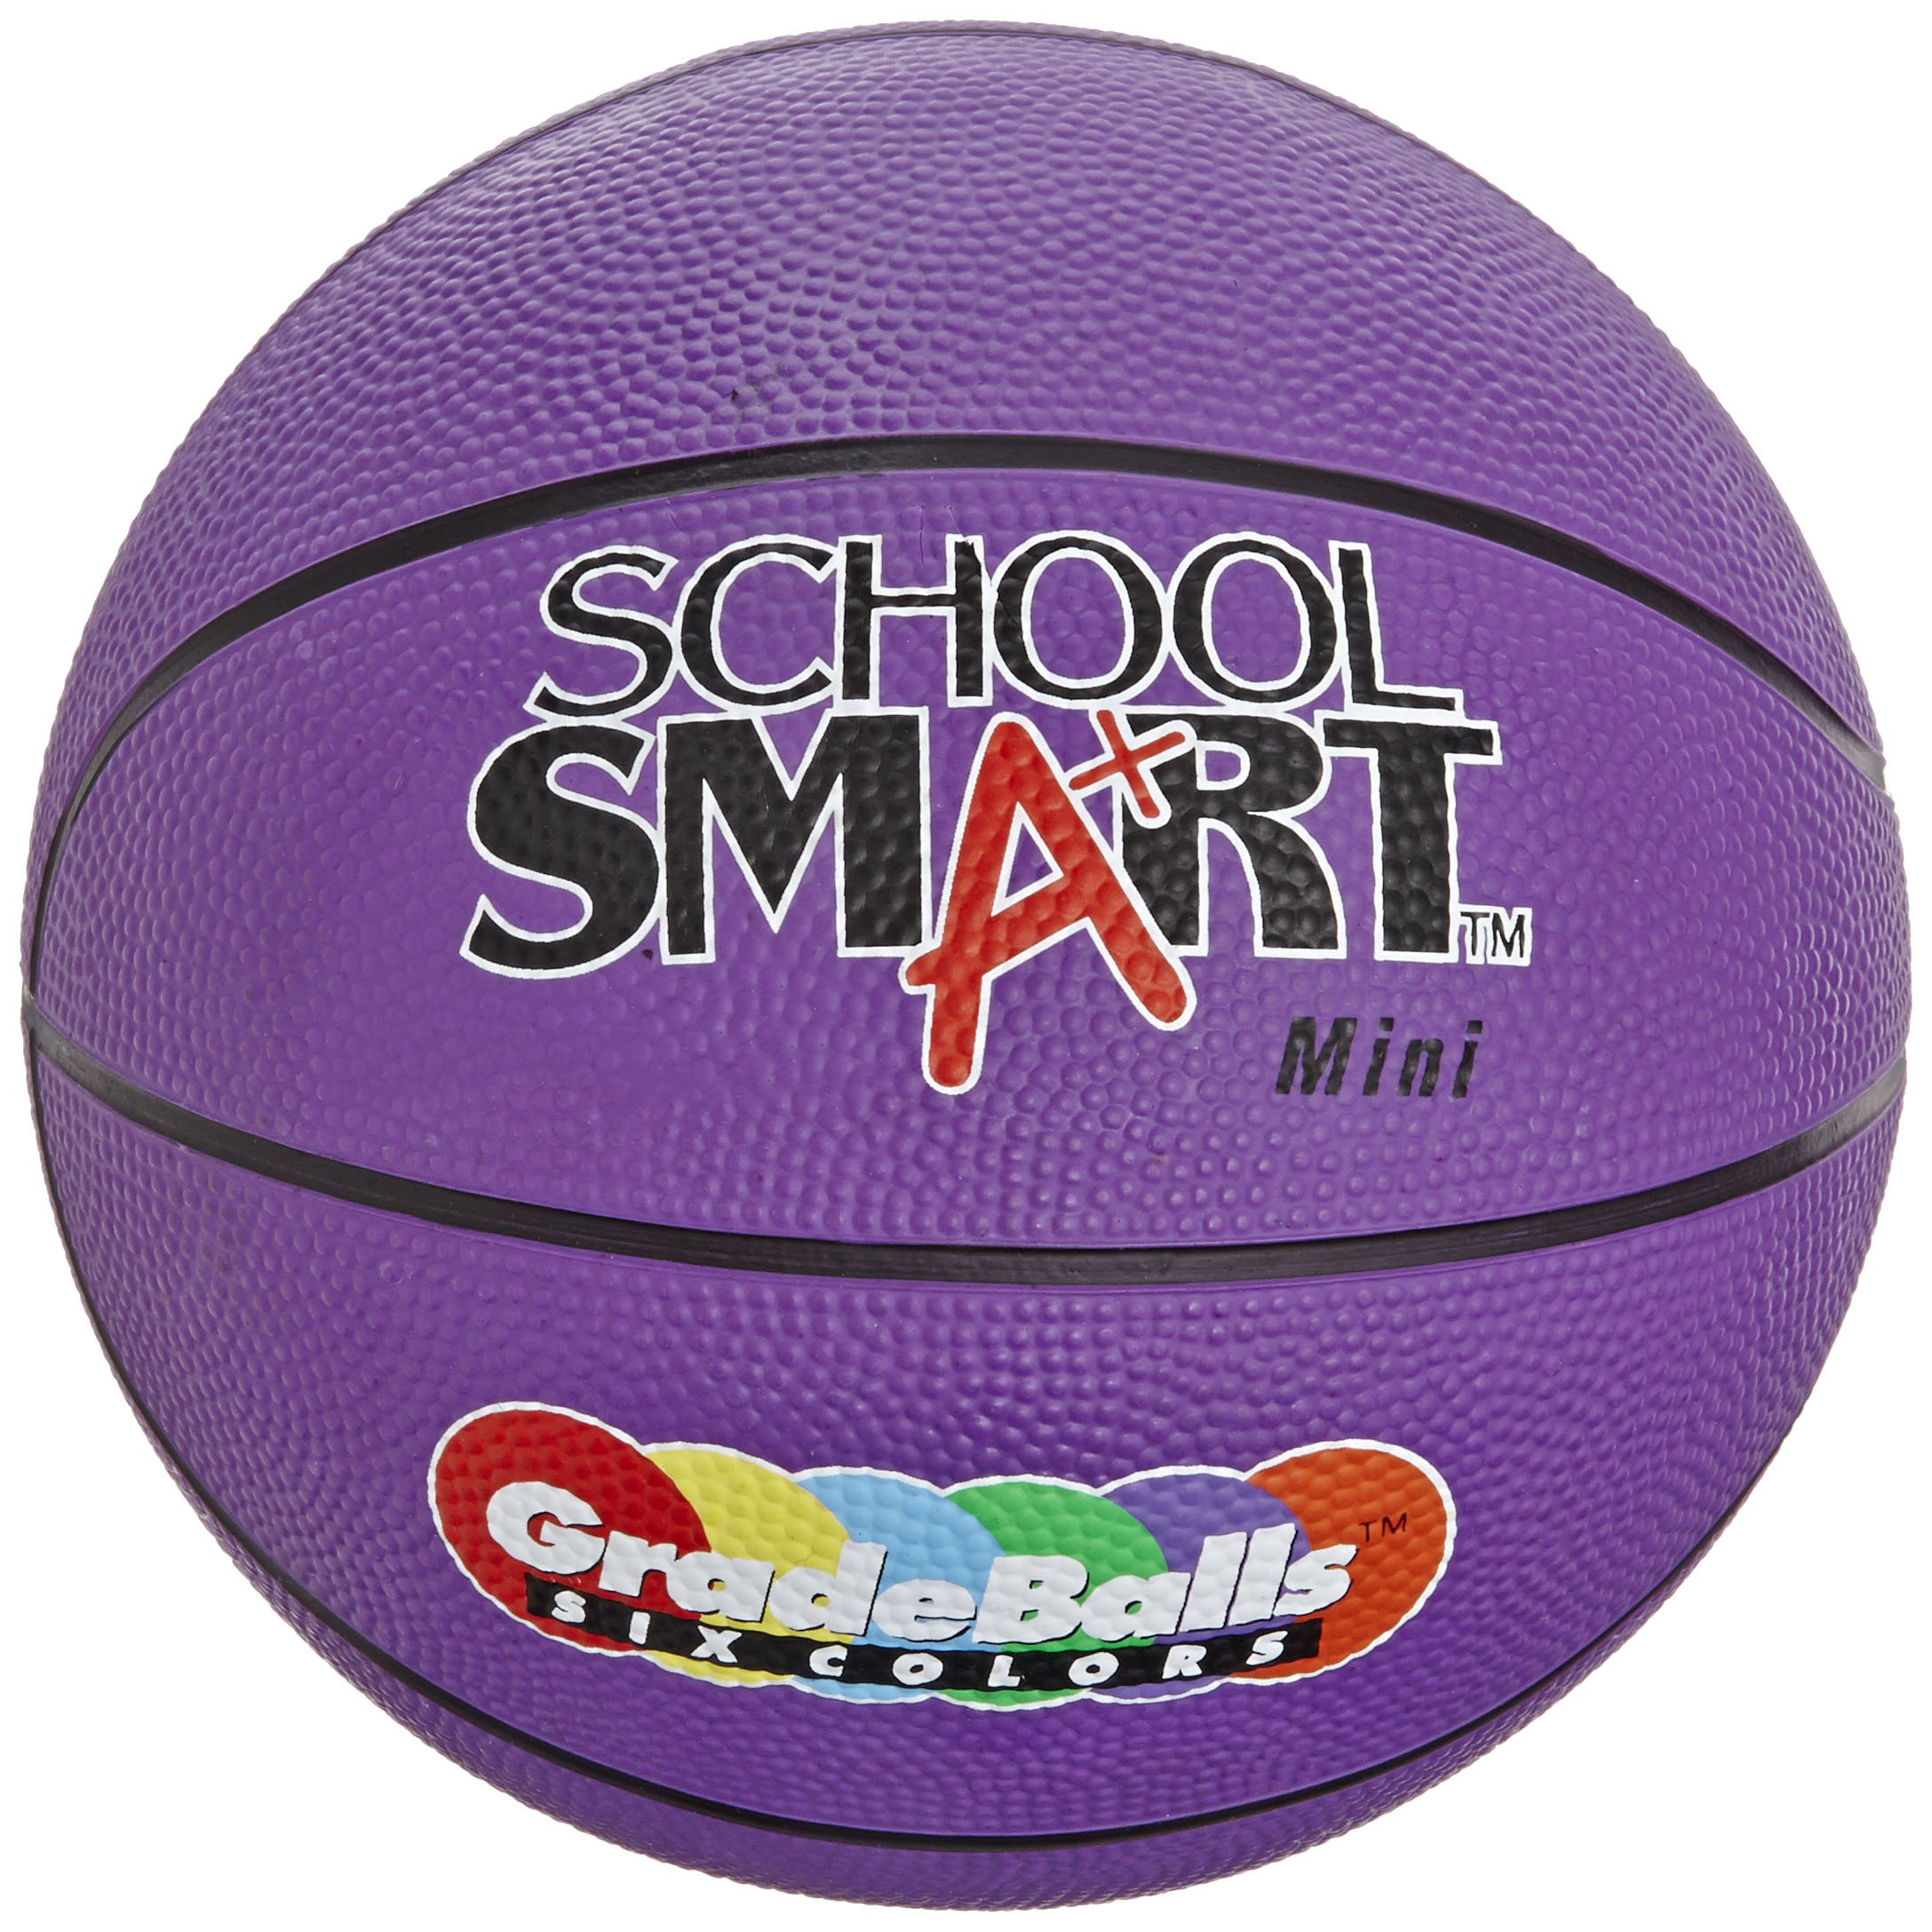 School Smart Gradeballs Rubber Basketball - Mini 11 inch - Violet